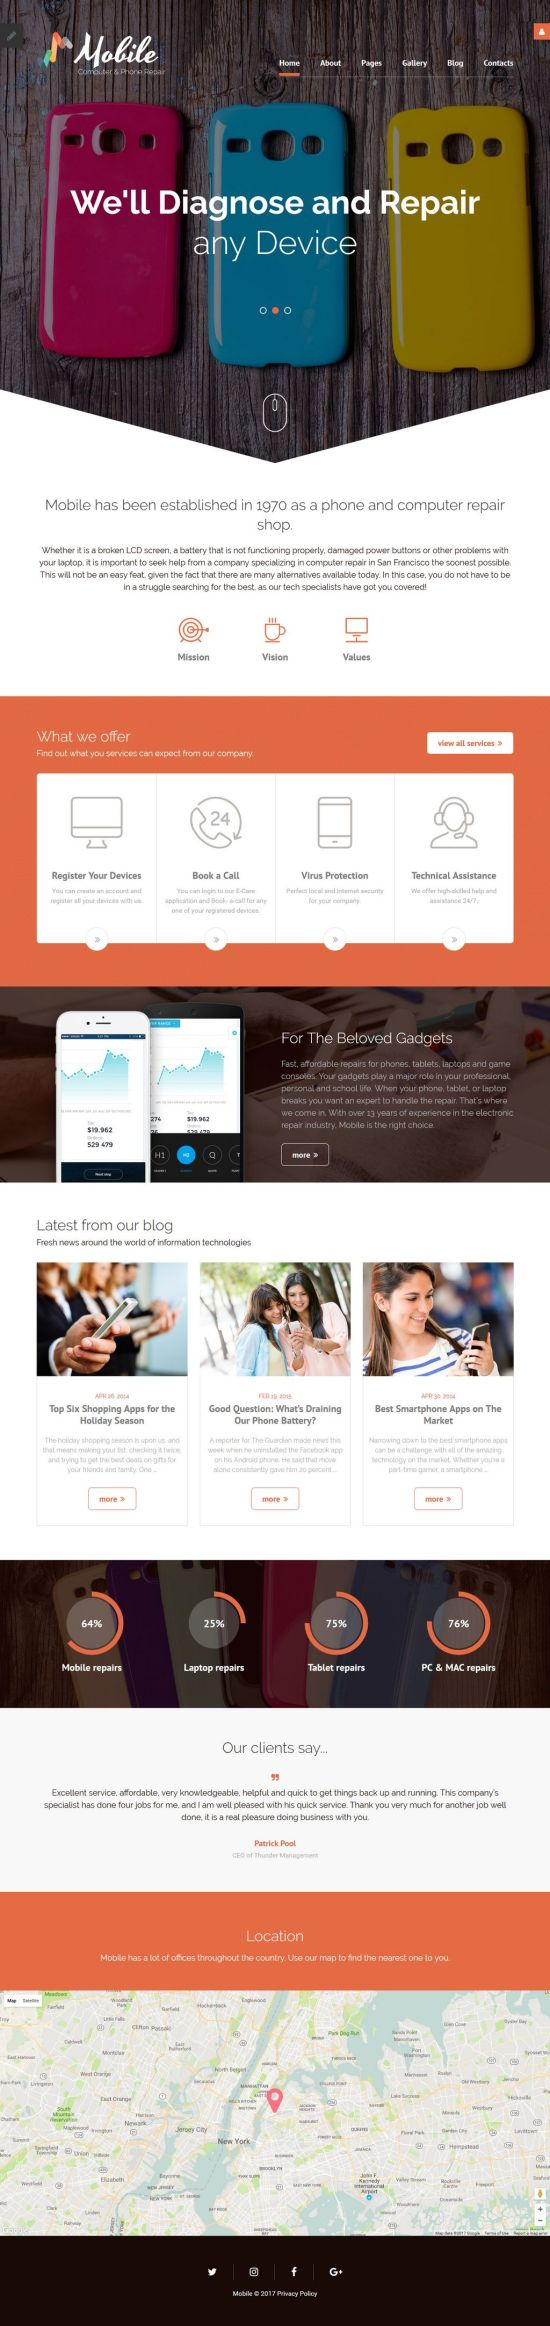 mobile repair services joomla template 01 - Mobile Repair Service Joomla Template